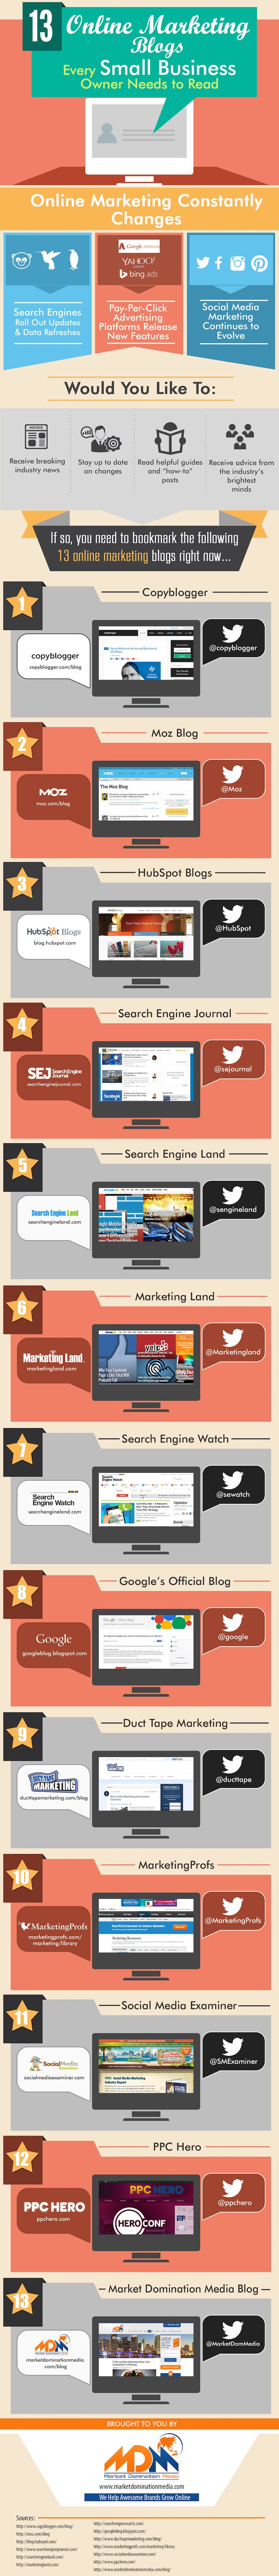 13 Online Marketing Blogs You Should be Reading #infographic #Marketing #Blogs